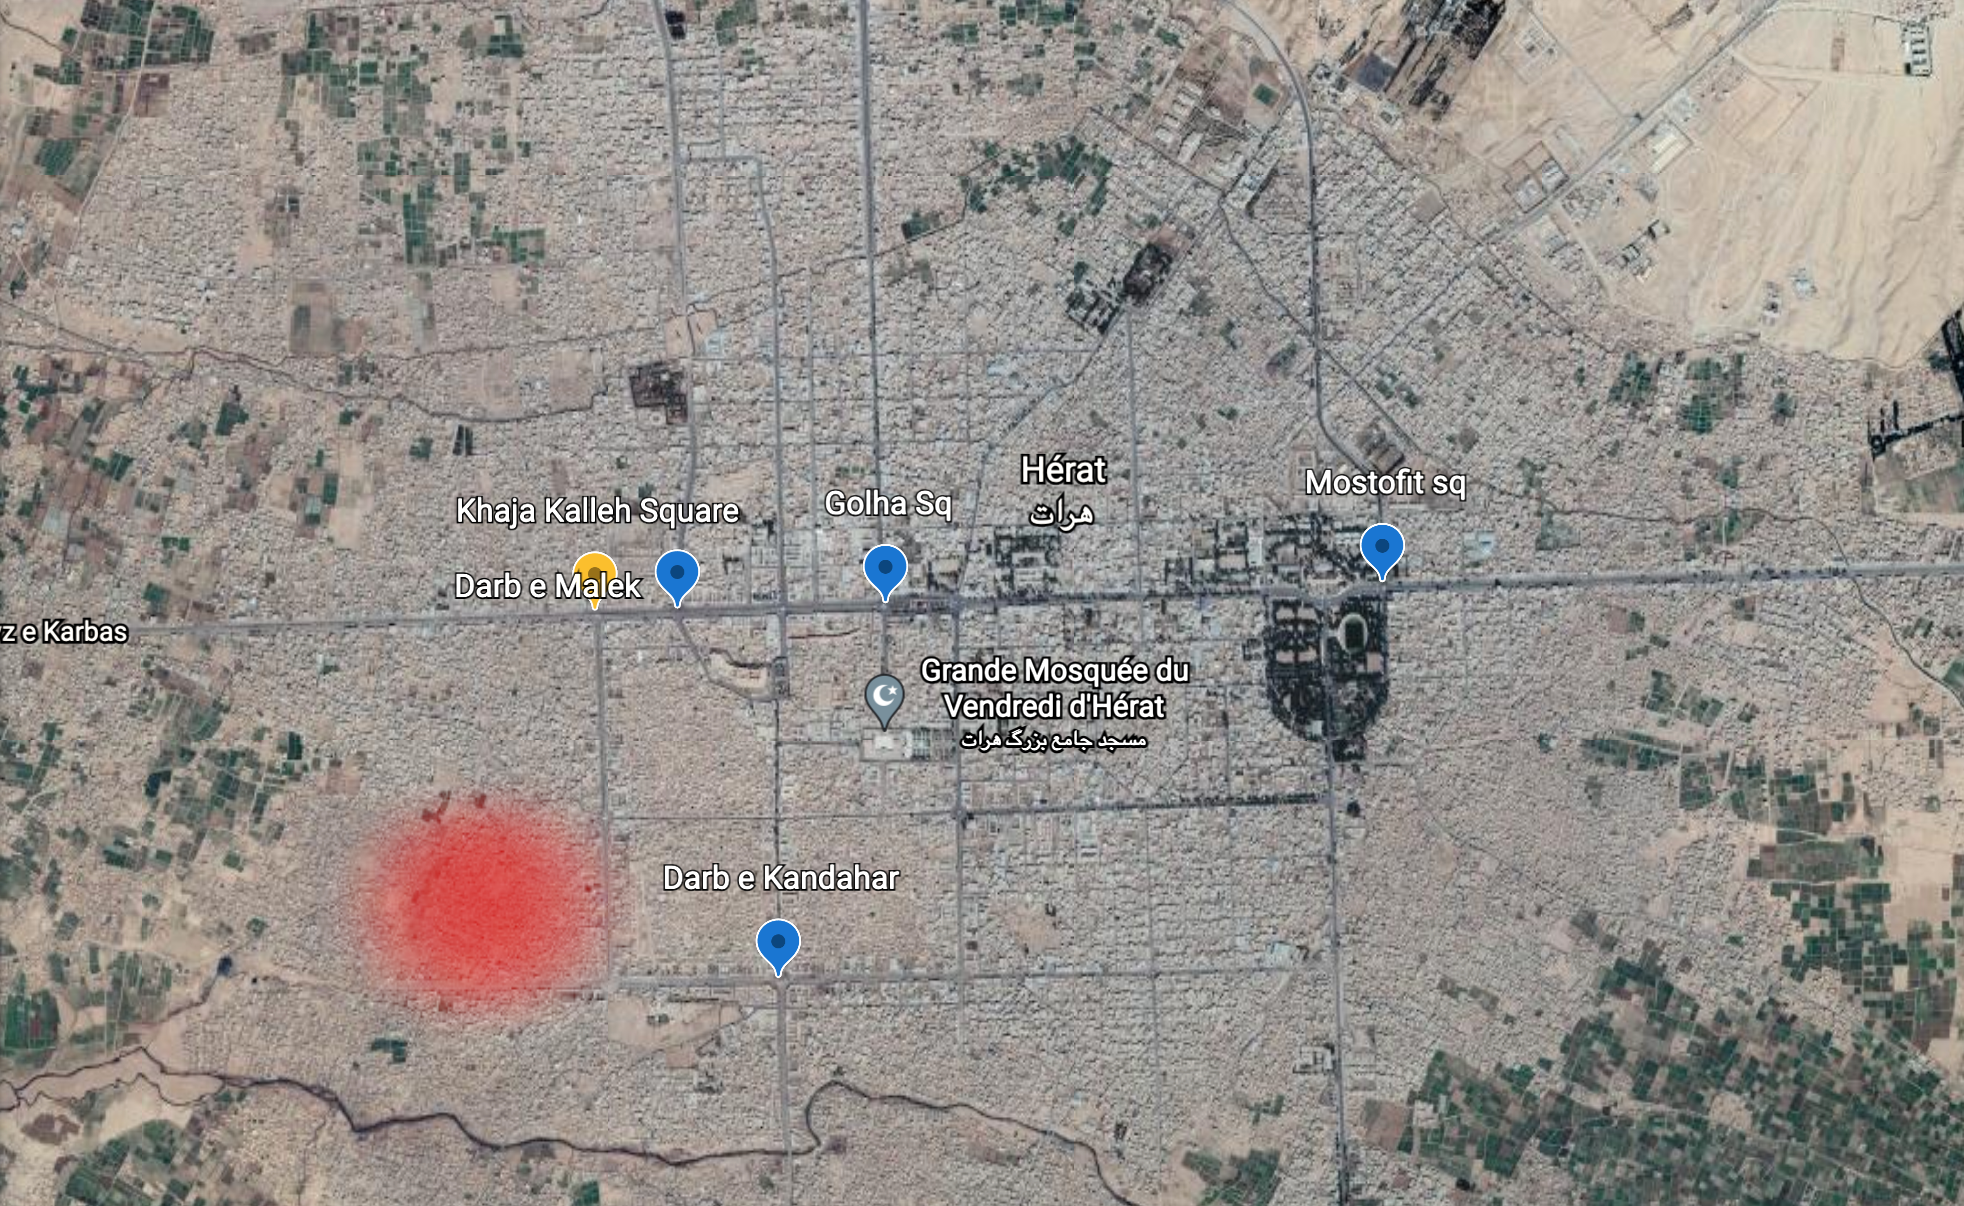 The four bodies were hung up in four different locations in Herat, Darb-e-Malek, Golha, Mostofit and Darb-e-Kandahar (shown in blue on the map). According to Afghan media outlets, the kidnapping took place in Khaja Kalleh square (marked in yellow) and the gunfight between Taliban officials and the kidnappers took place in the city's 14th district (shown in red).